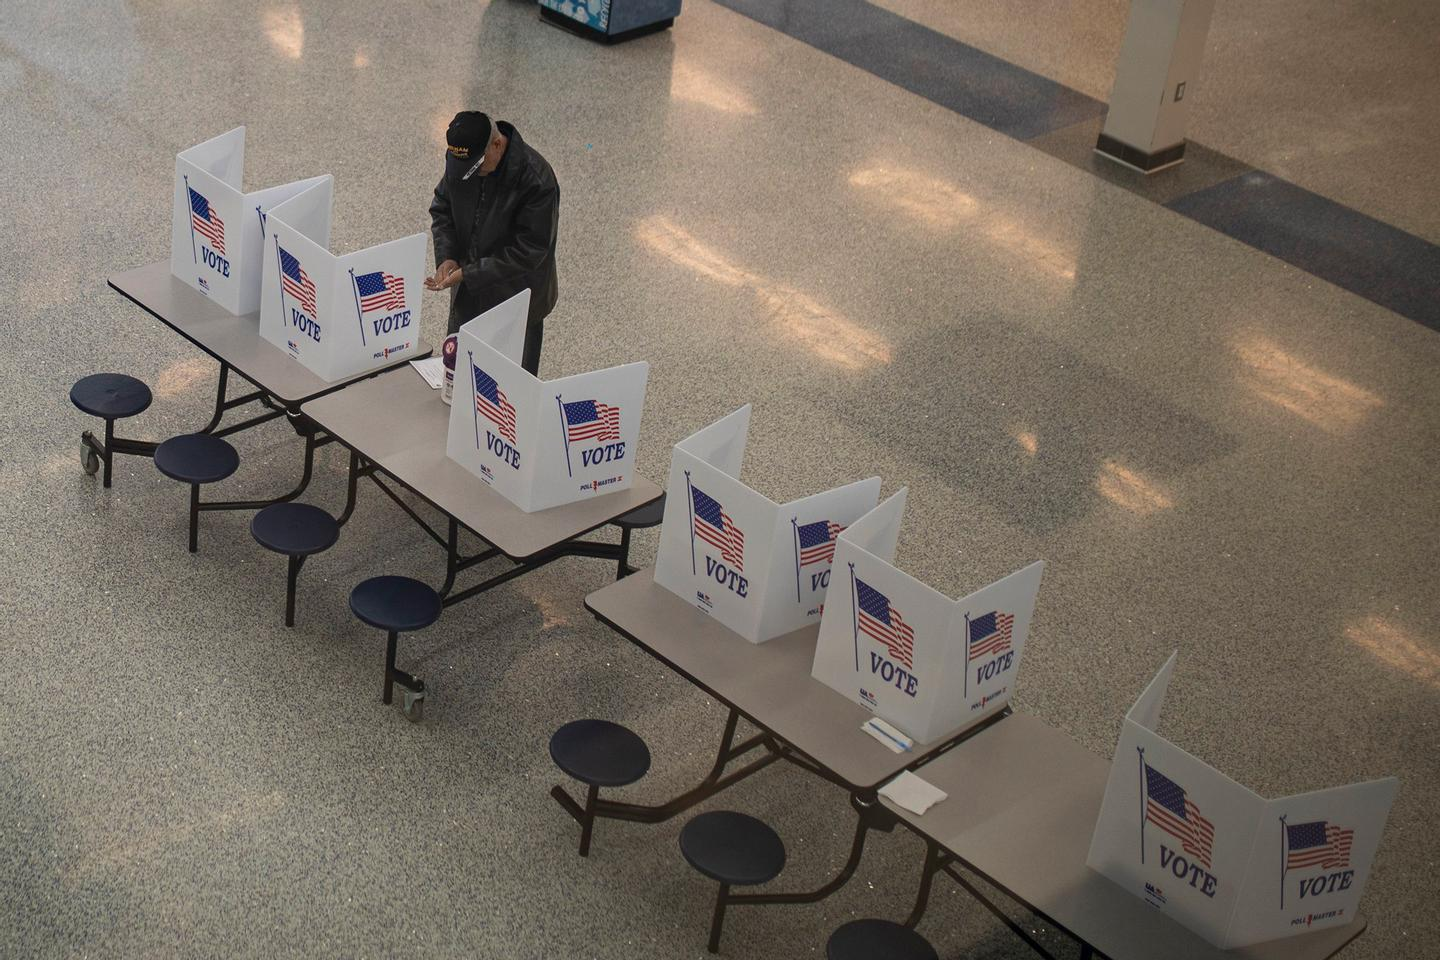 Voting victories for Democrats in Pa. might have closed the door on more election reform